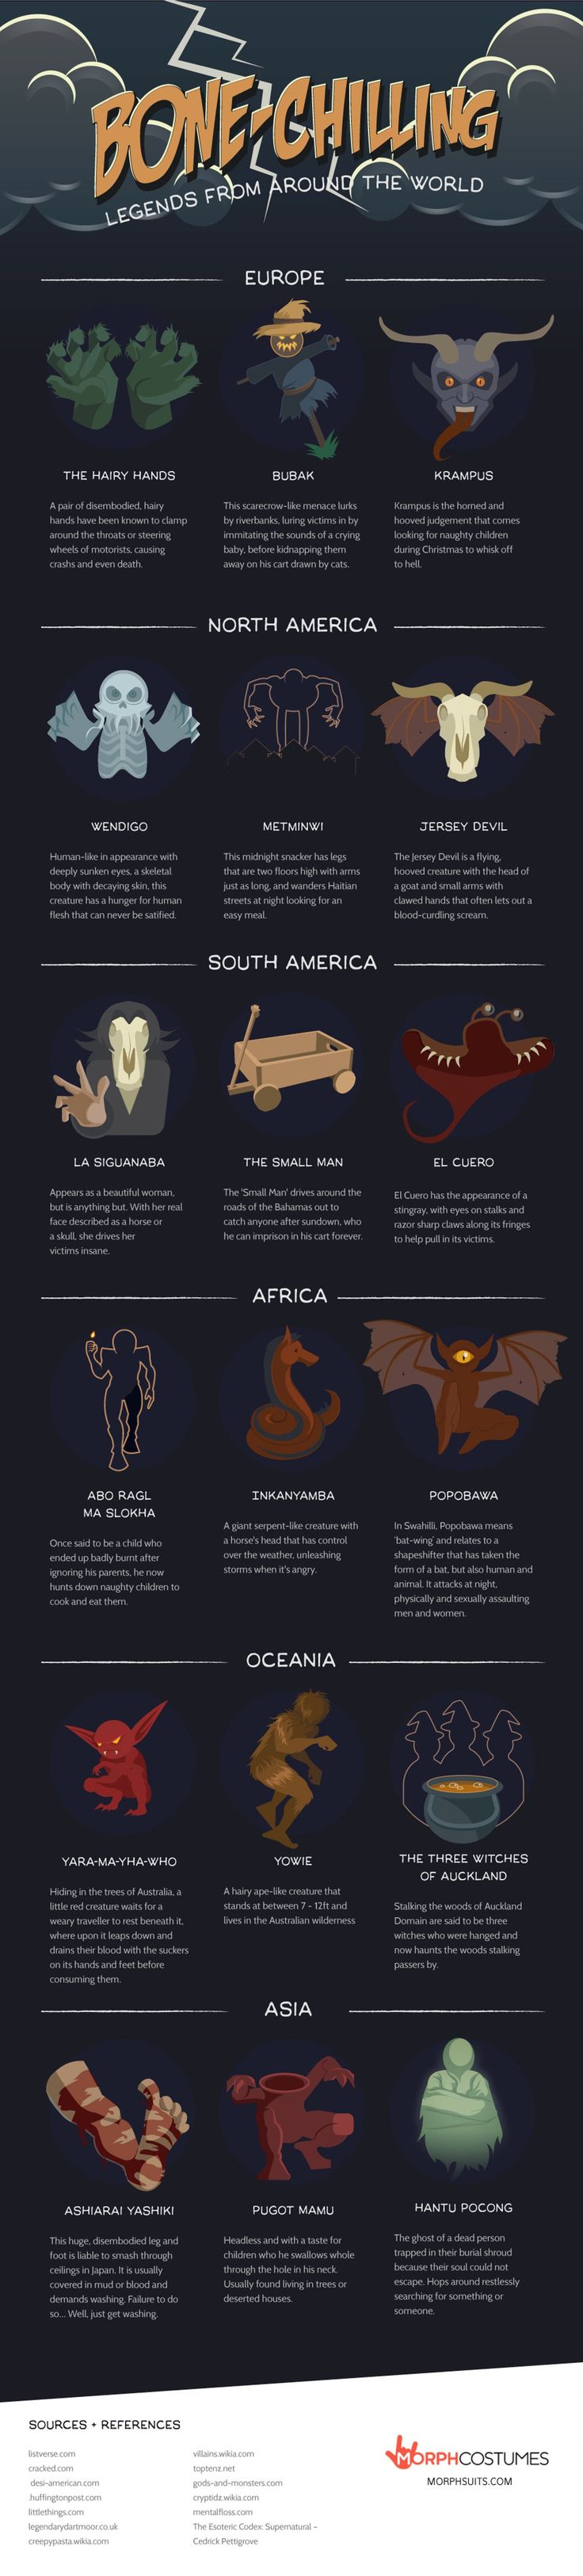 What's the Halloween season without a few scary stories? Not much at all, if you ask me — which is why I was delighted to find UK-based costume retailer Morph Costume's latest infographic. Detailing 18 creepy urban legends from around the world, it's